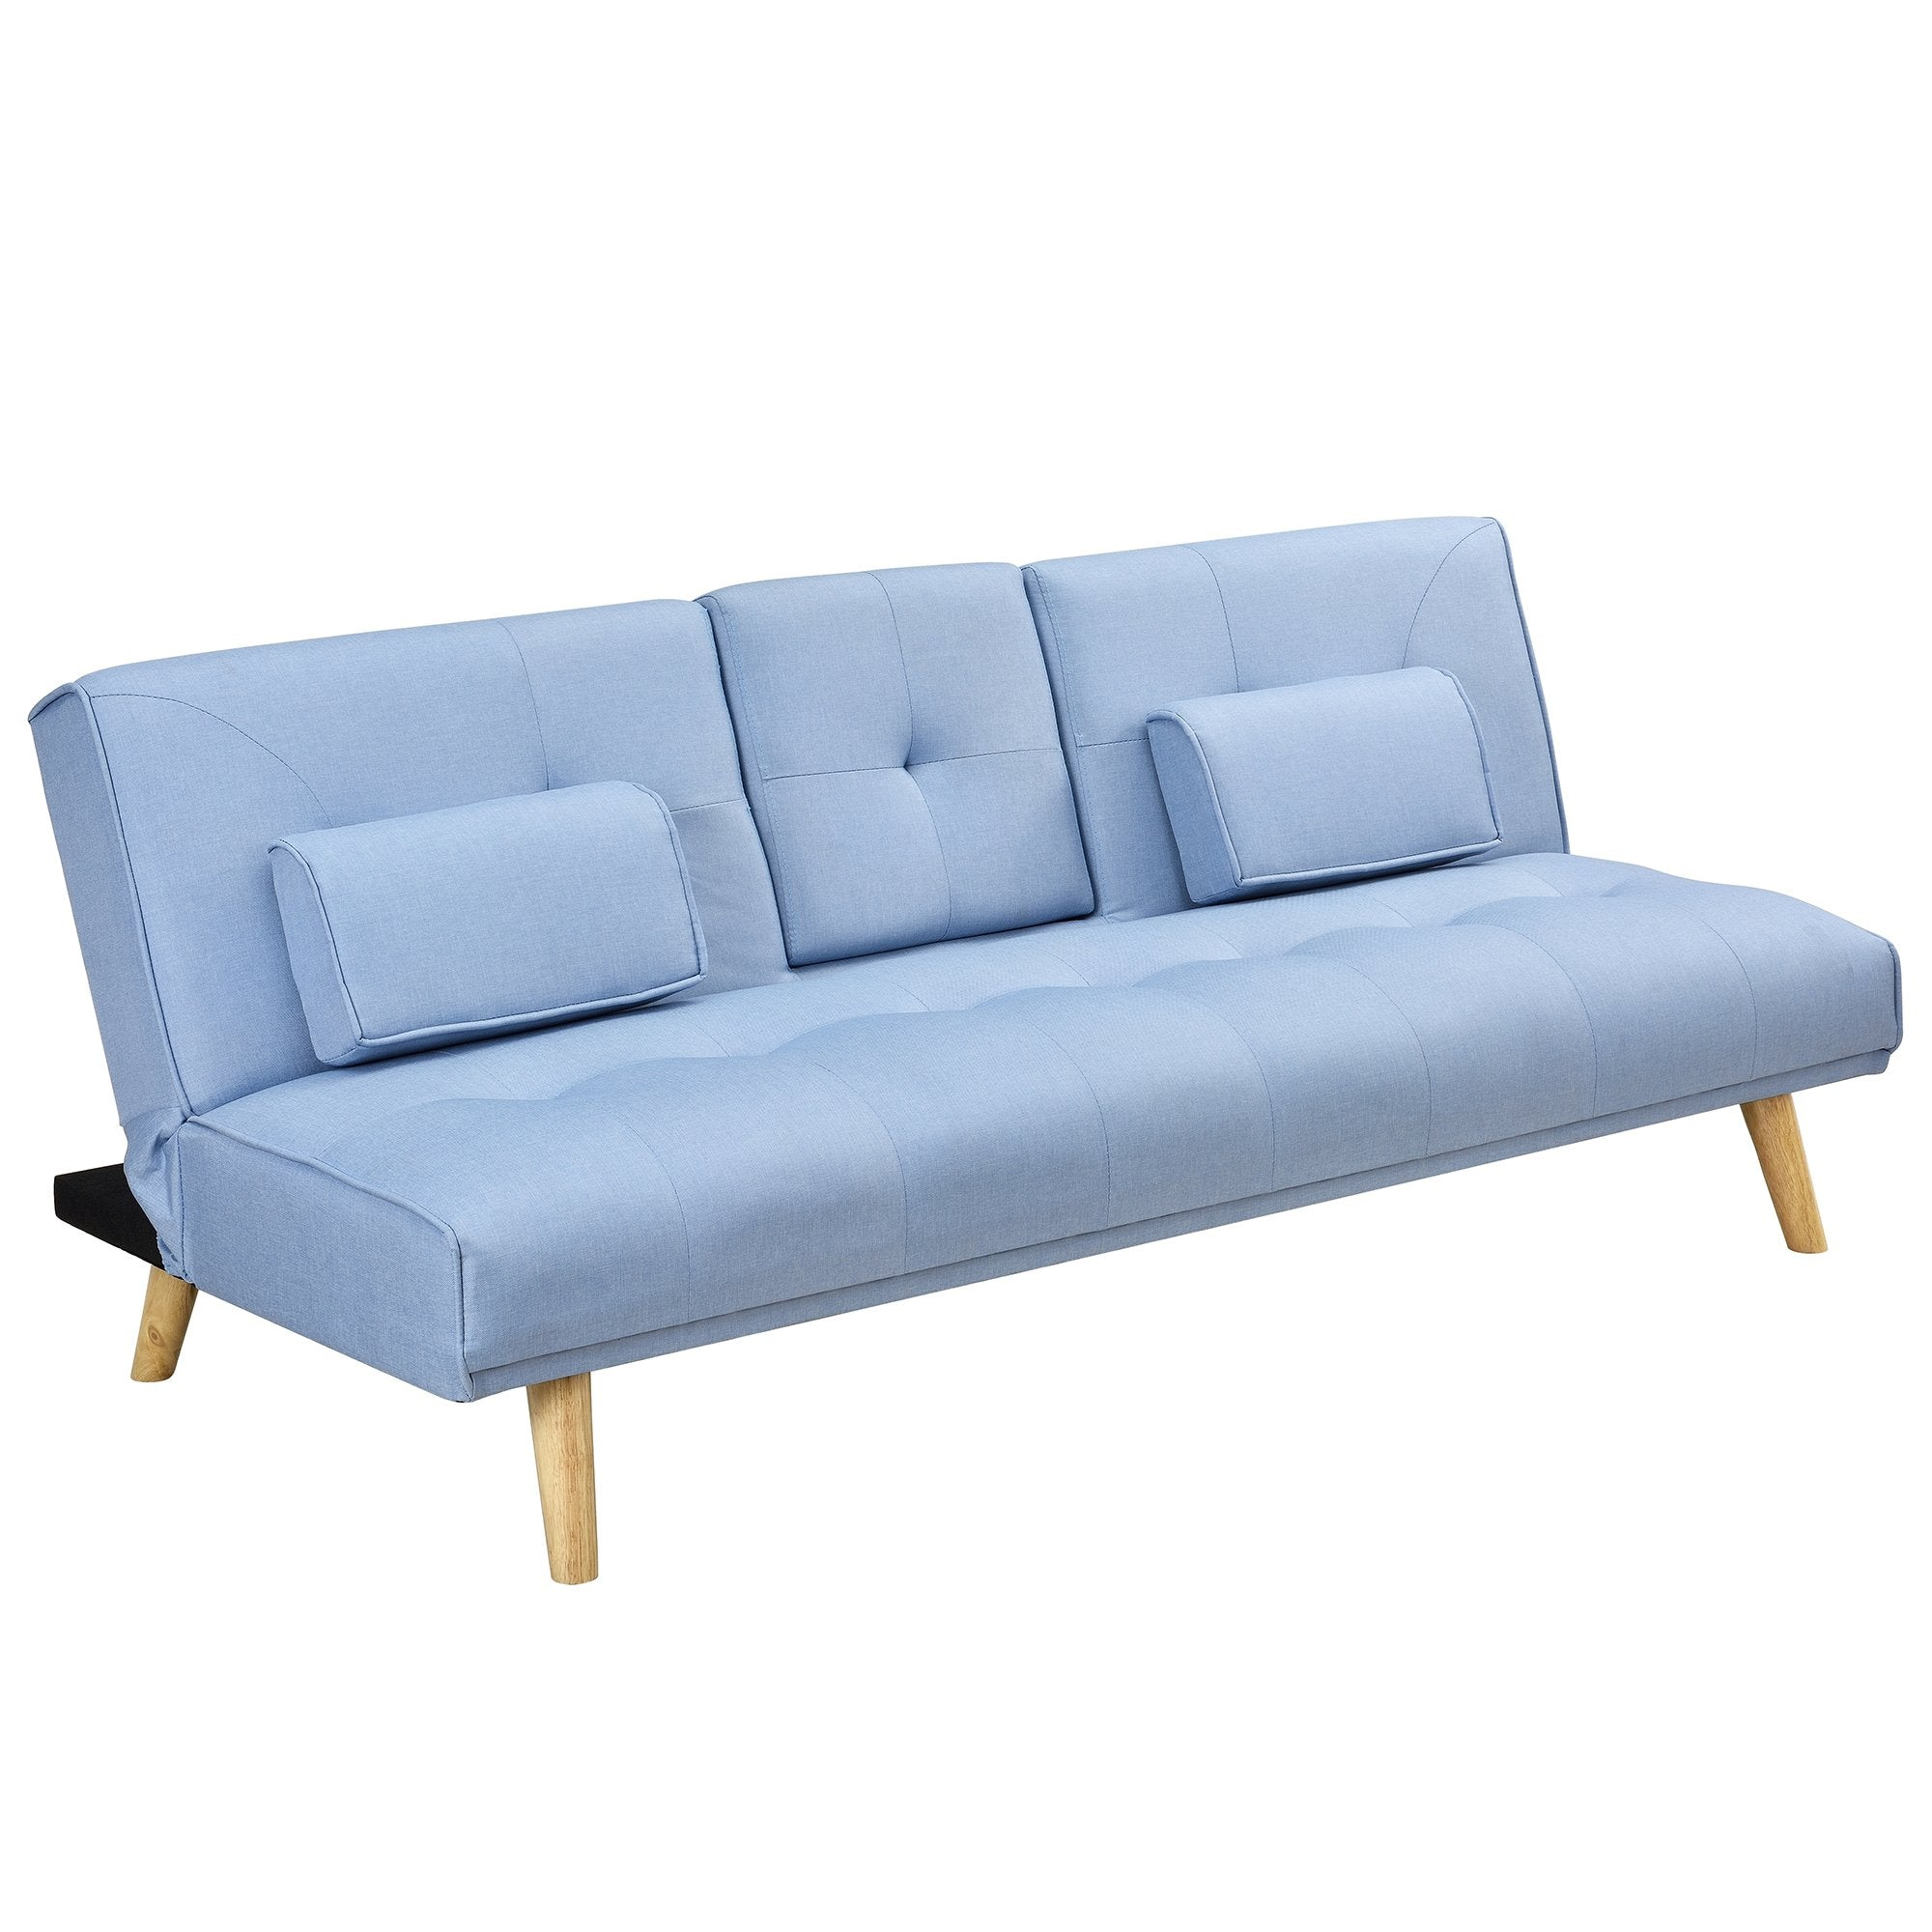 Excellent Acrux 3 Seater Sofa Bed With Cup Holders Cushions Light Blue Fabric Ocoug Best Dining Table And Chair Ideas Images Ocougorg